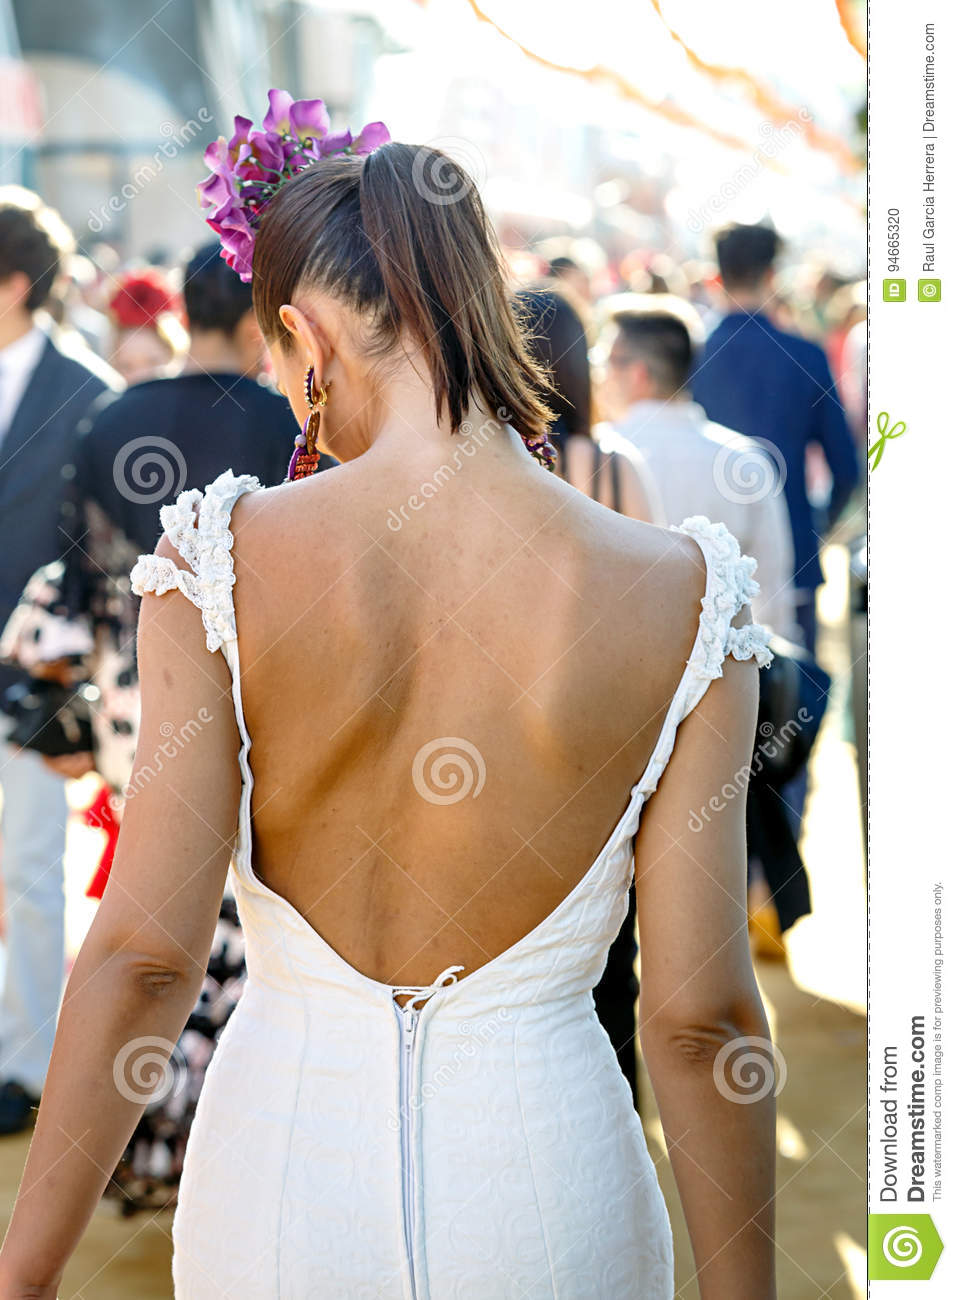 Back View of beautiful fashion woman wearing flamenco dress. Spanish folklore. Seville April Fair